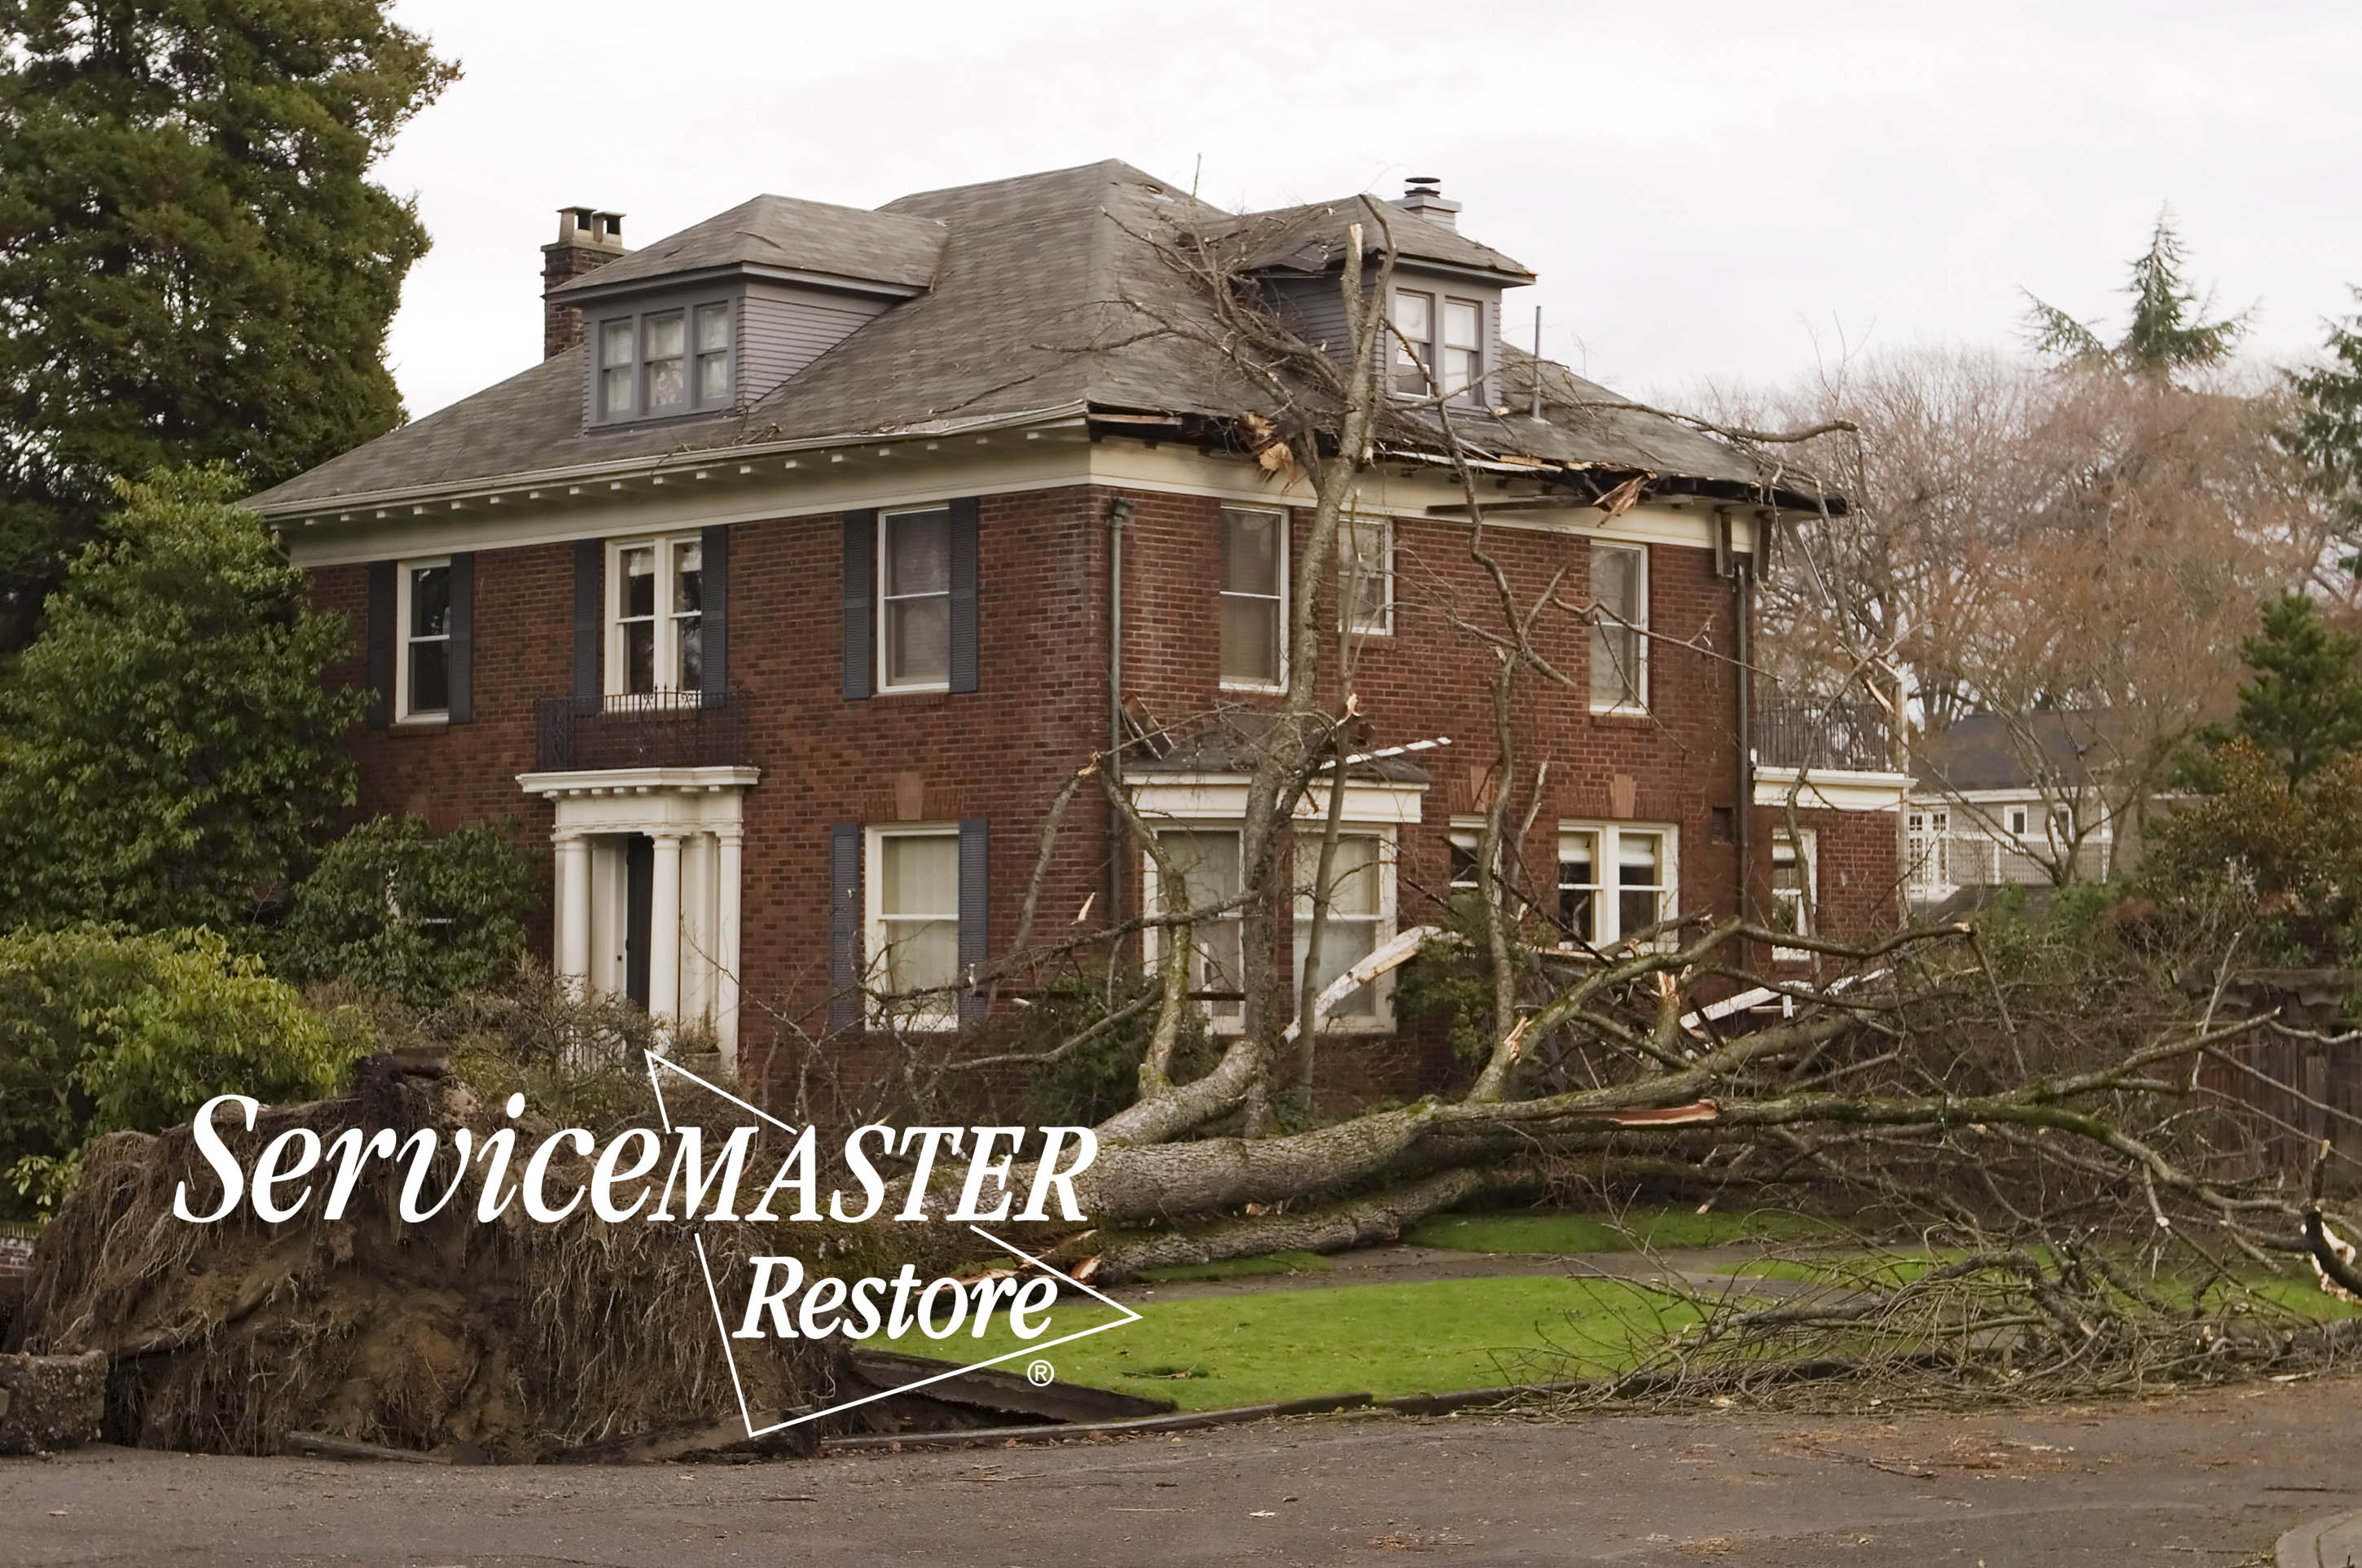 Wind Damage Cleanup in Tateville, KY